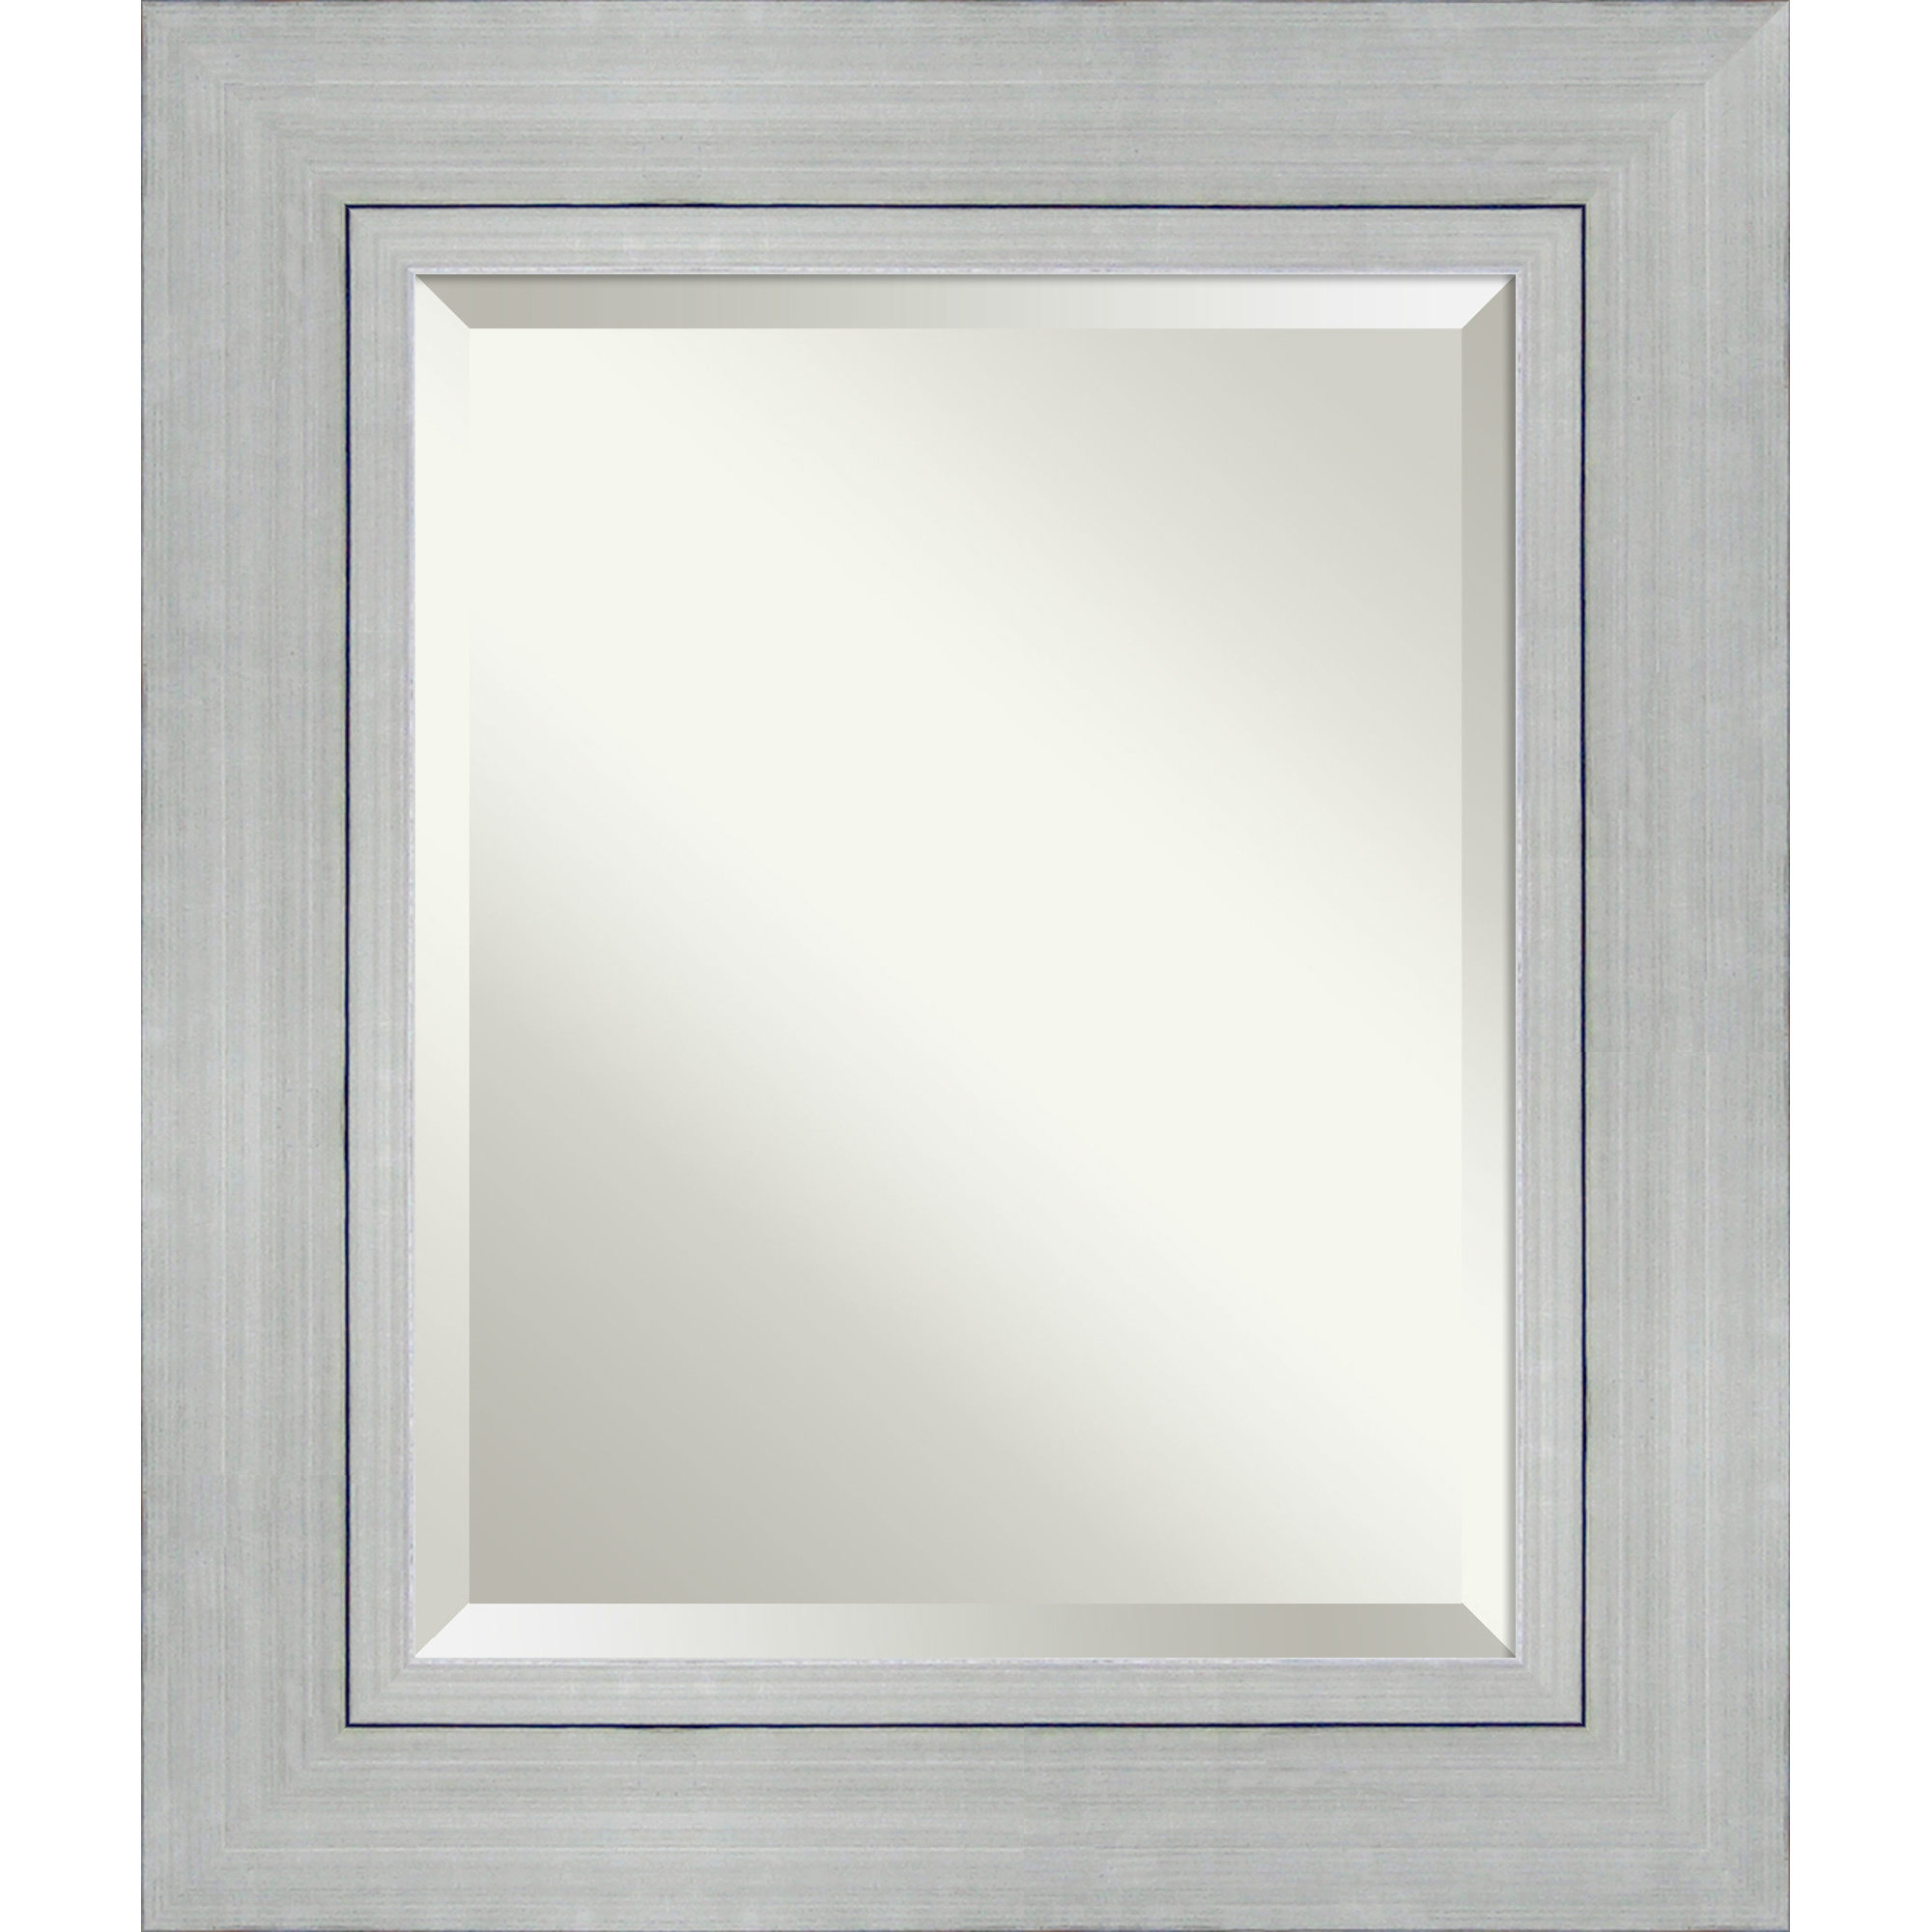 Tetbury Frameless Tri Bevel Wall Mirrors Within Newest Weeks Rectangle Wall Mirror (Gallery 8 of 20)